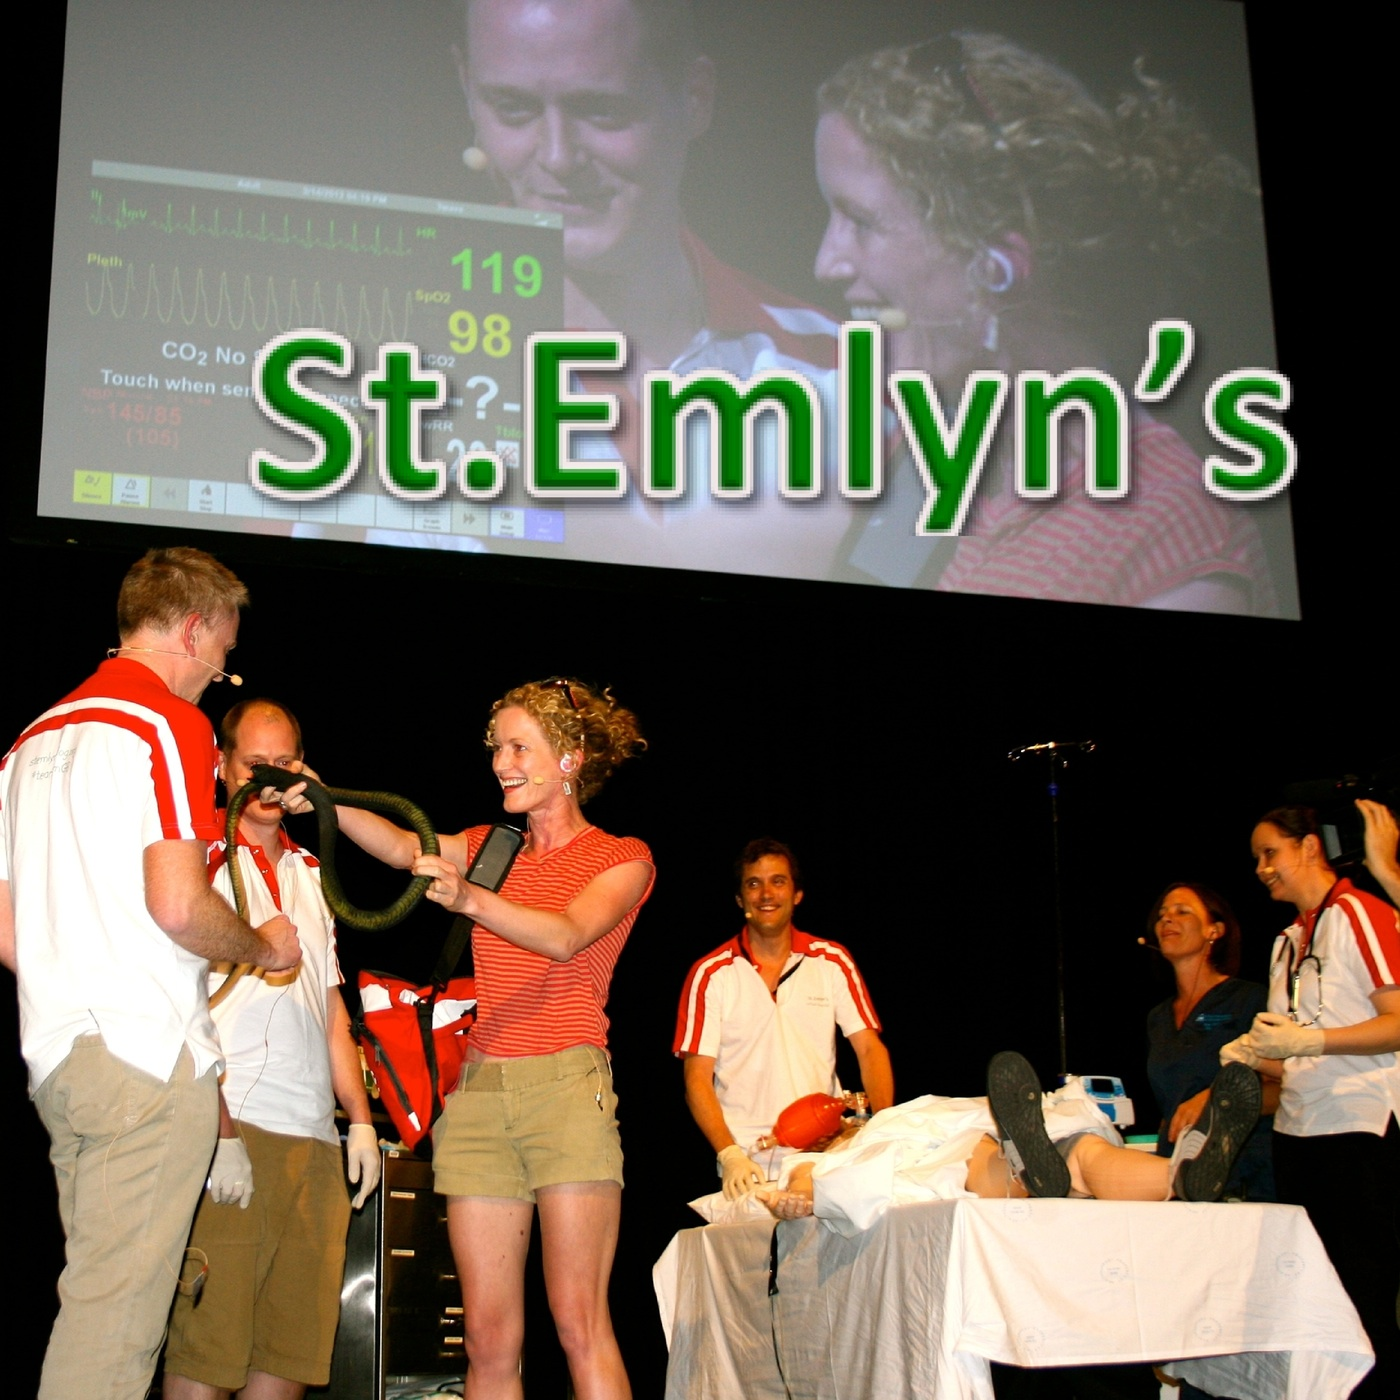 The St.Emlyn's virtual hospital podcast